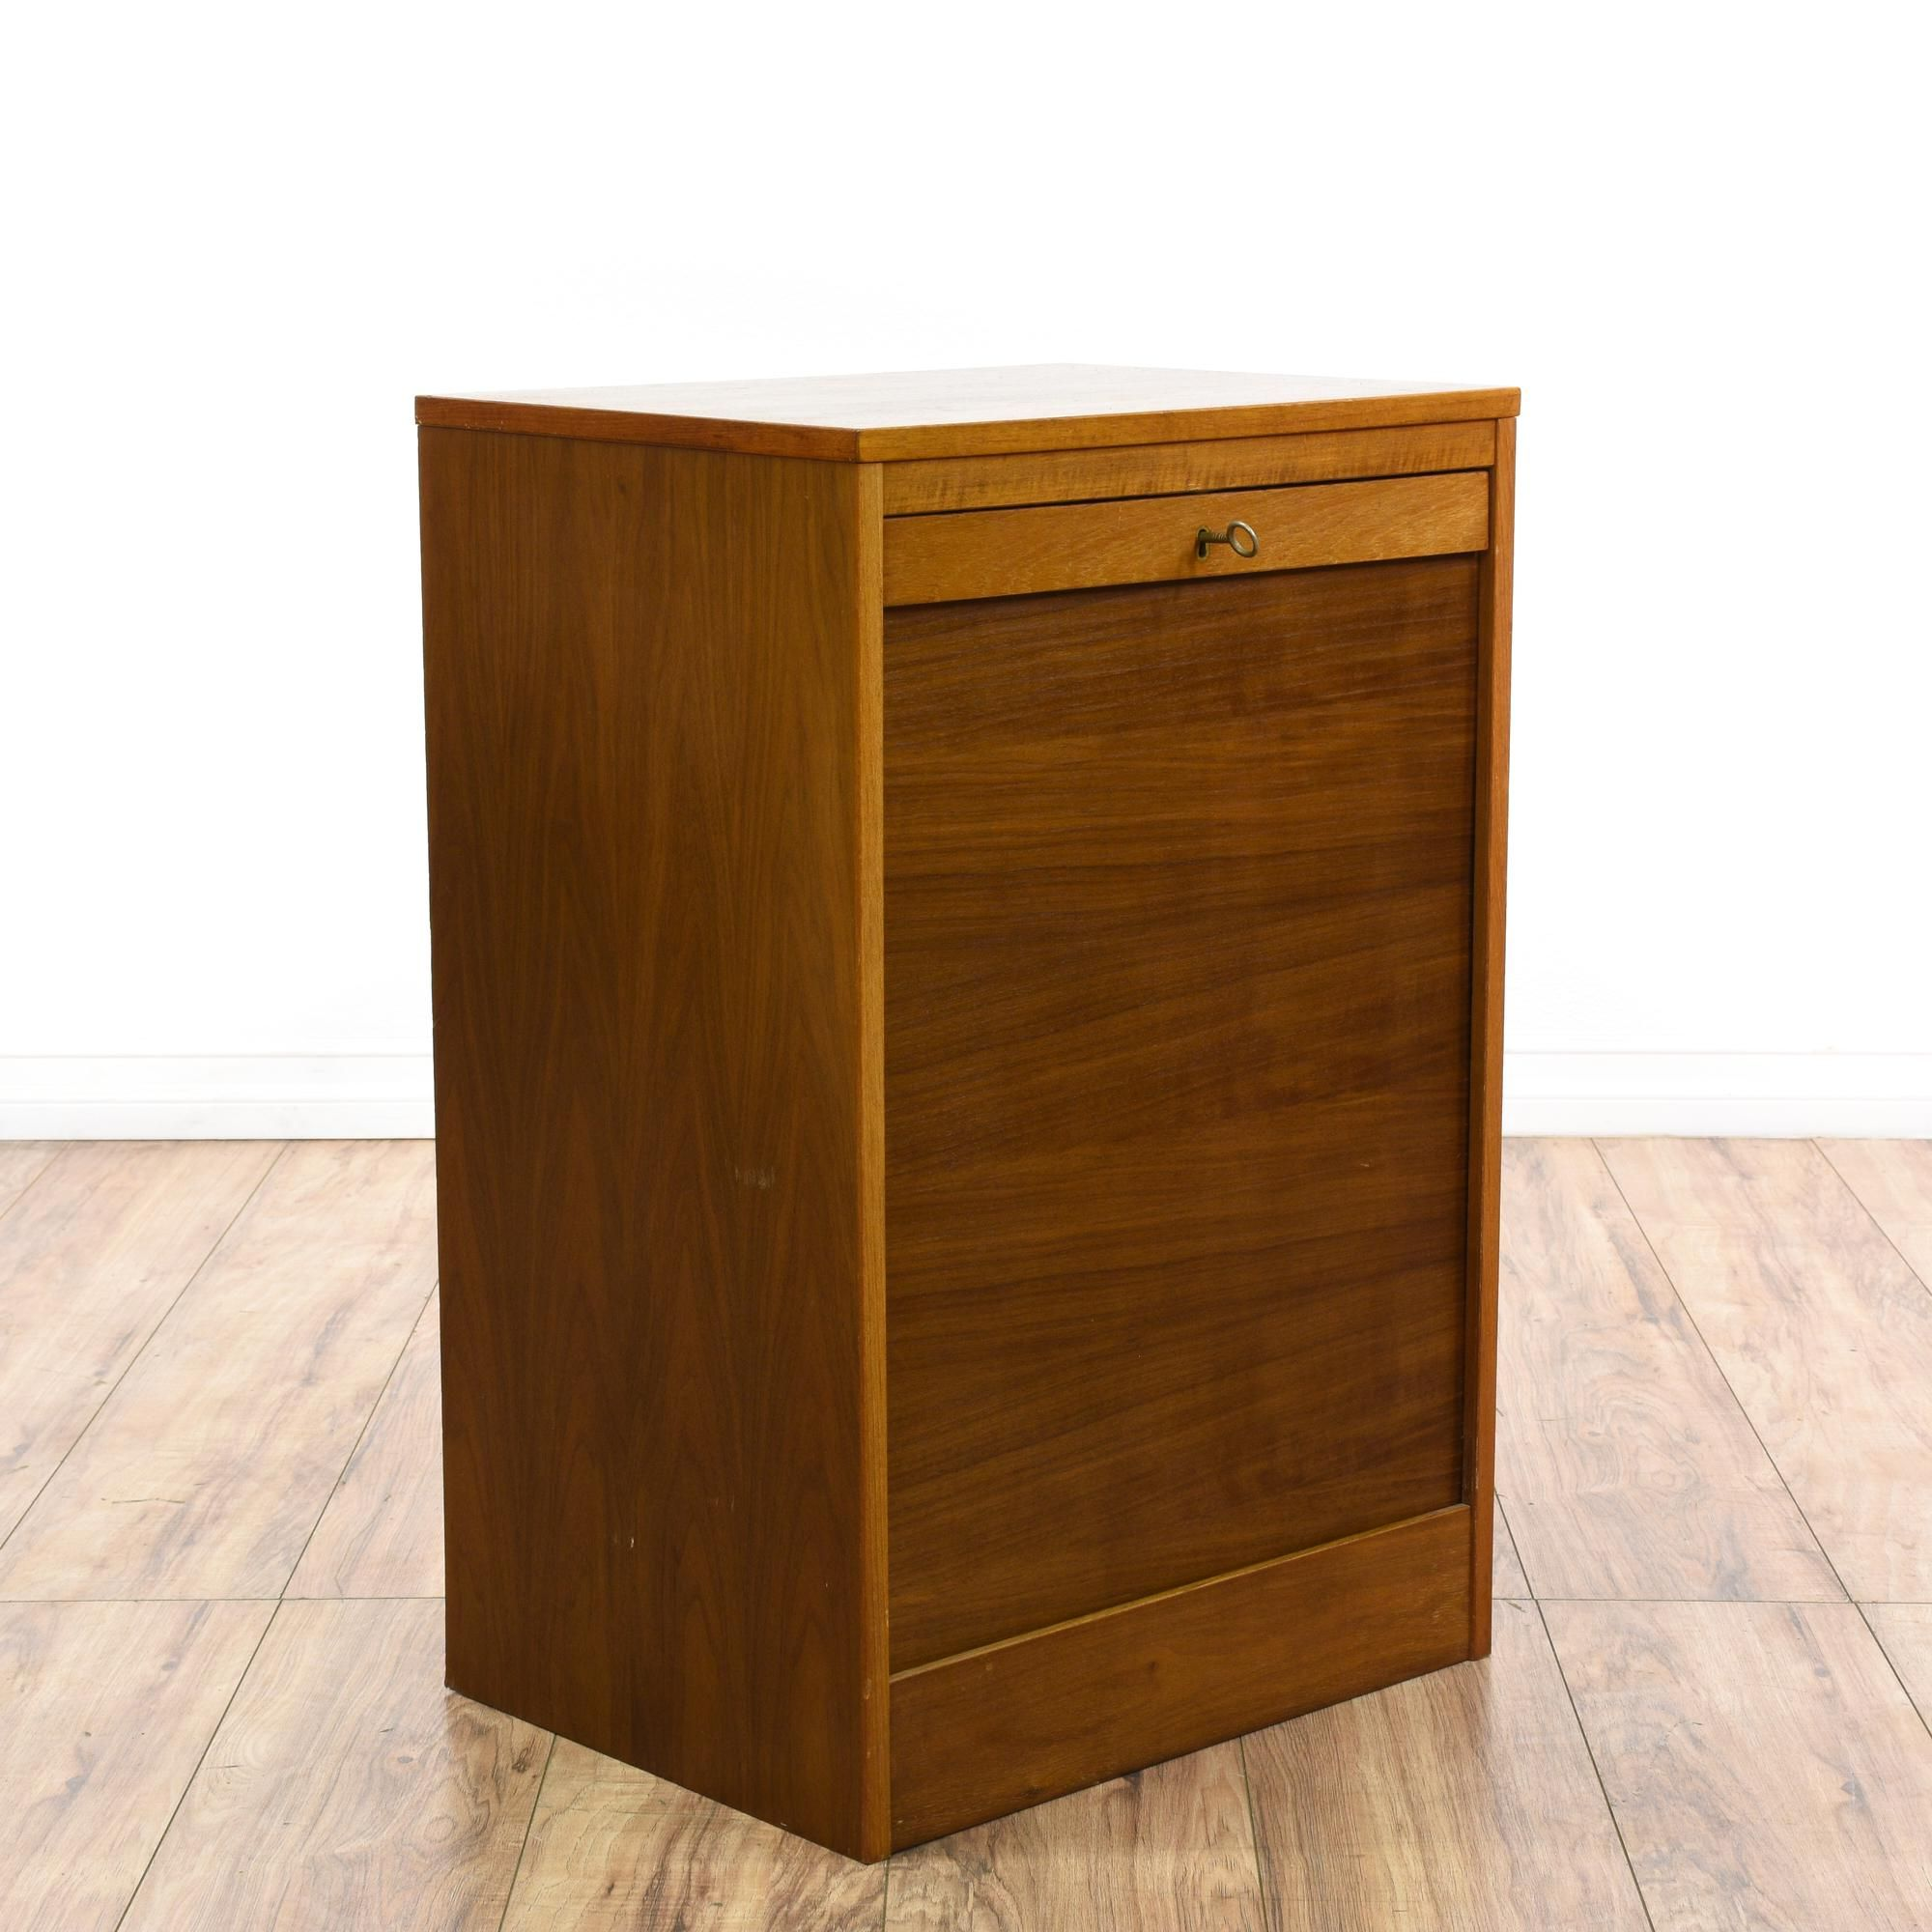 Best Of File Cabinet Credenza Modern